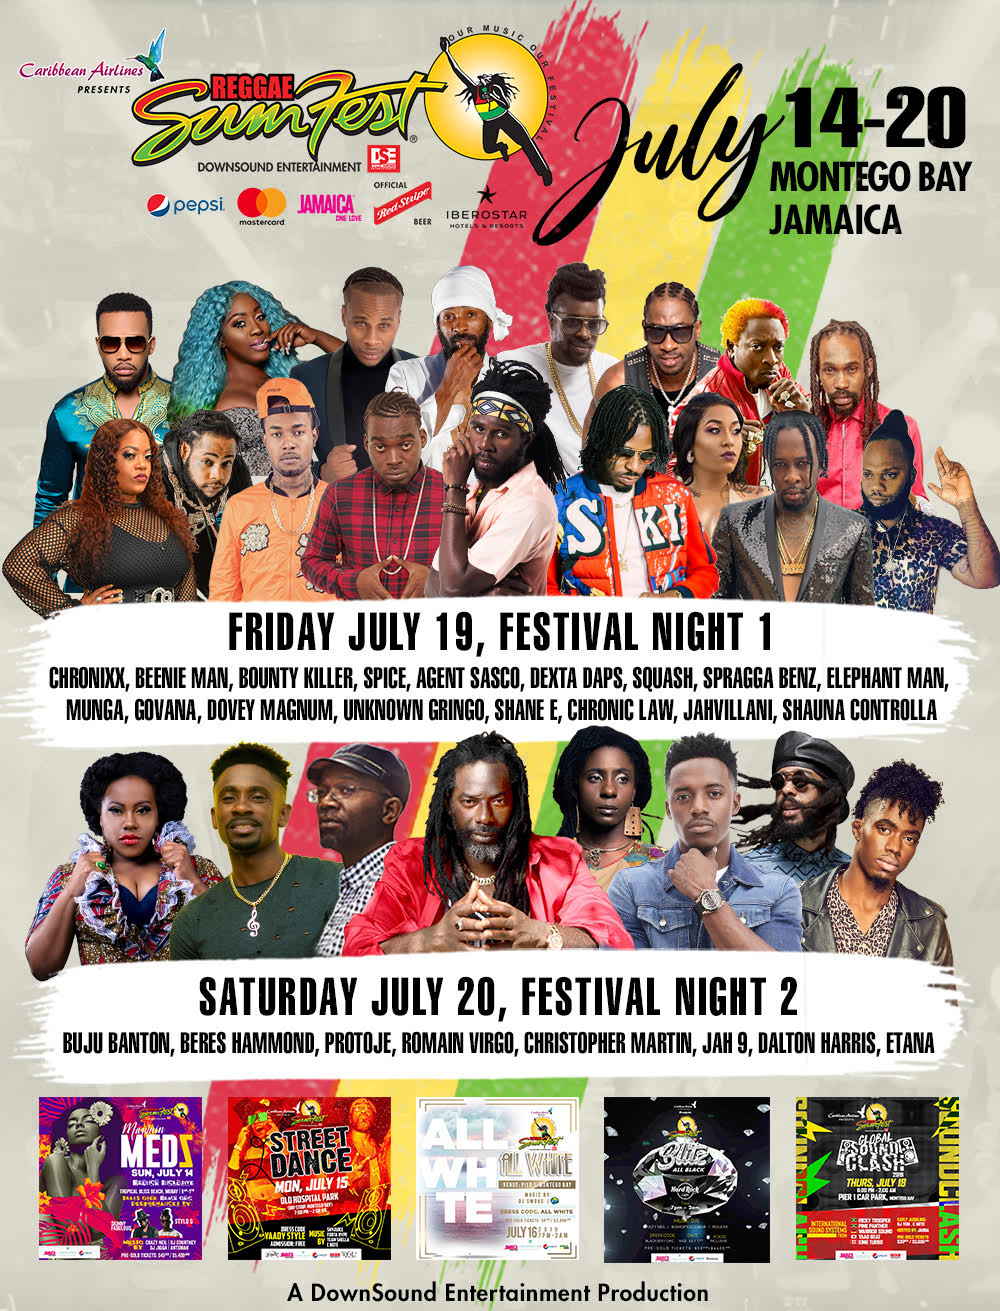 Stage Black Friday In July 2019 Ad Deals And Sales Reggae Sumfest Our Music Our Festival